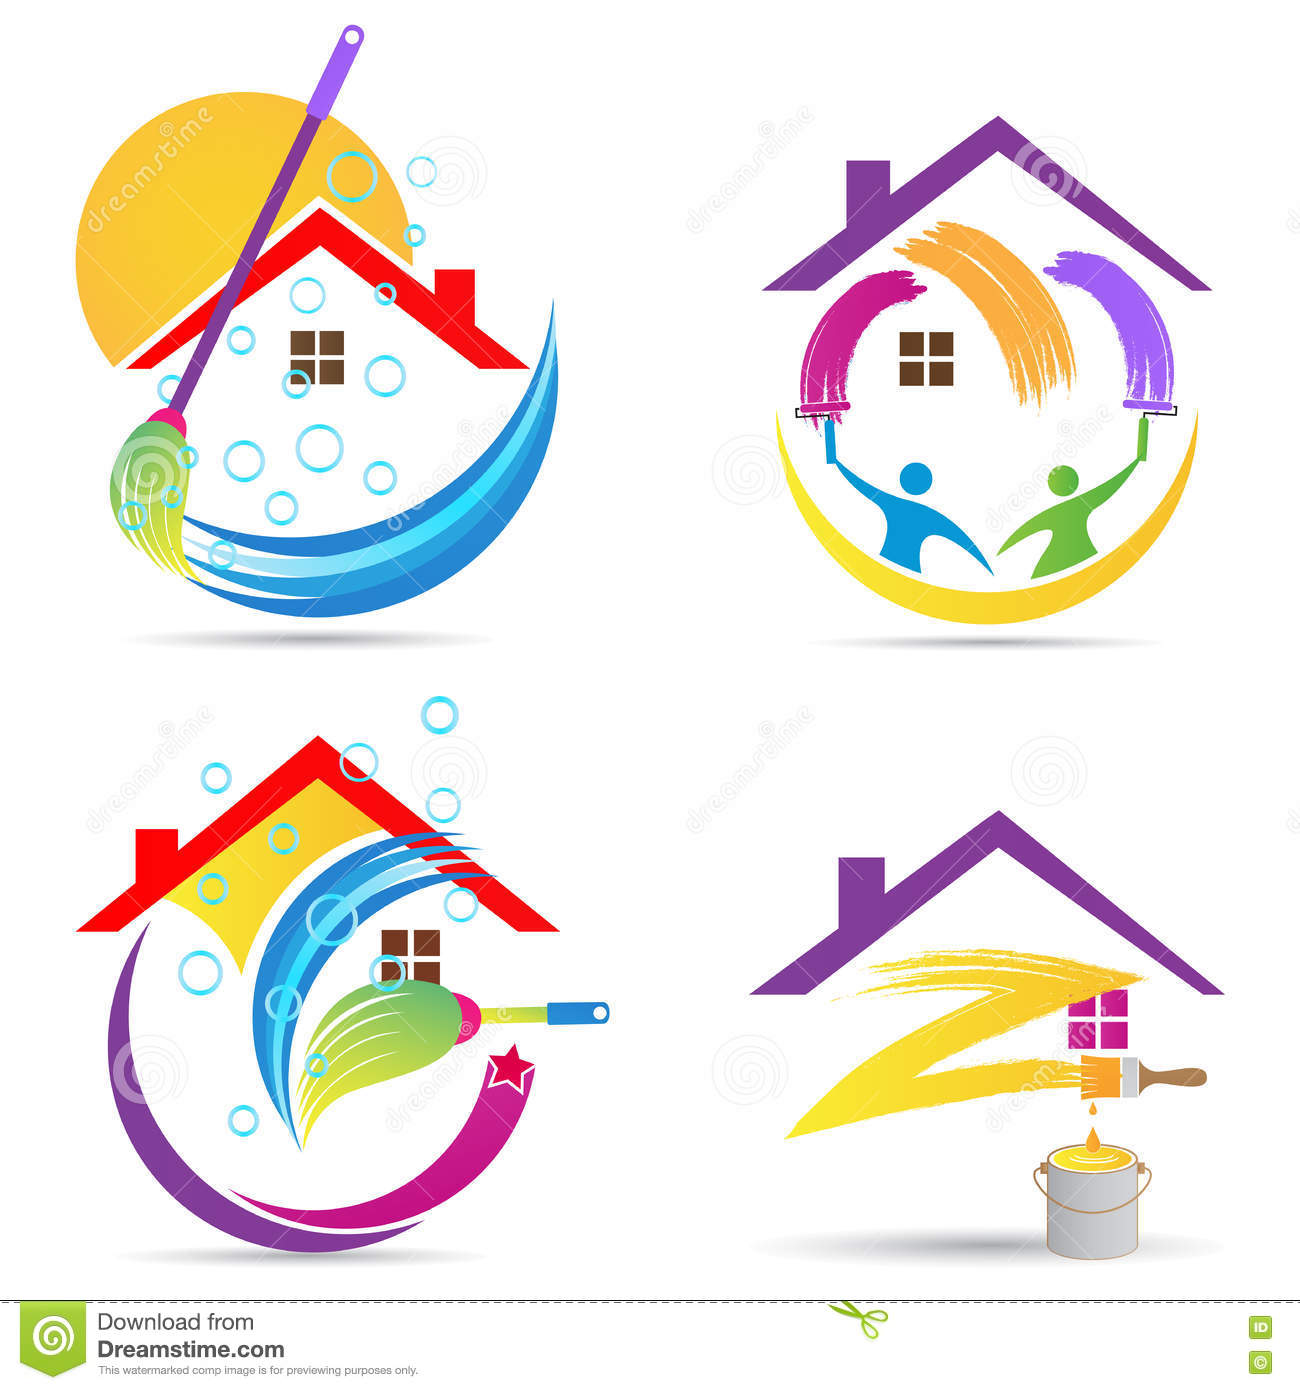 Home cleaning service logo house renovation painting maintenance improvement vector symbol icon design.